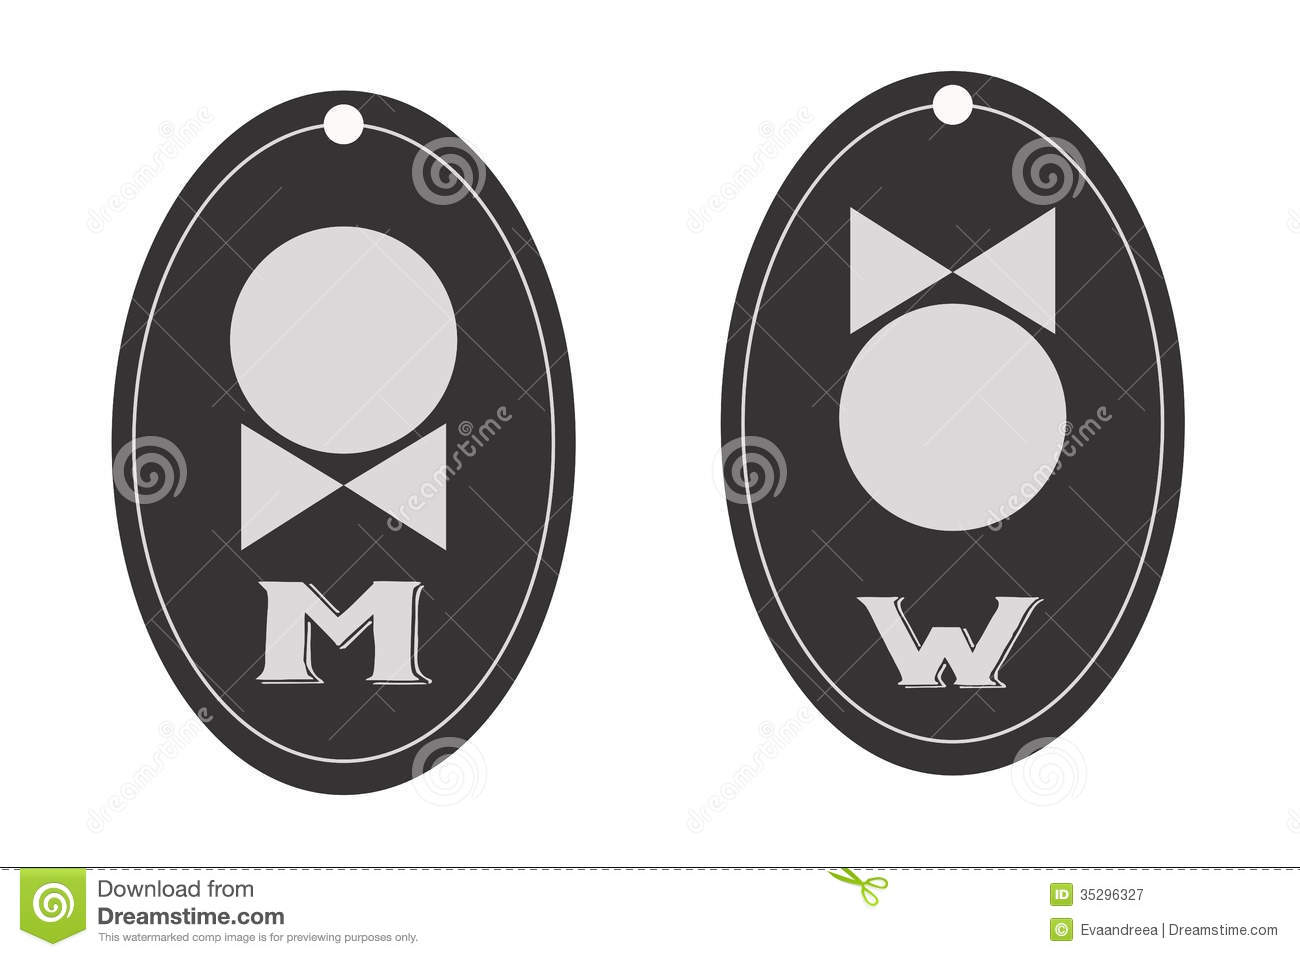 Bathroom Signs Vector man and woman toilet sign, restroom symbol stock vector - image